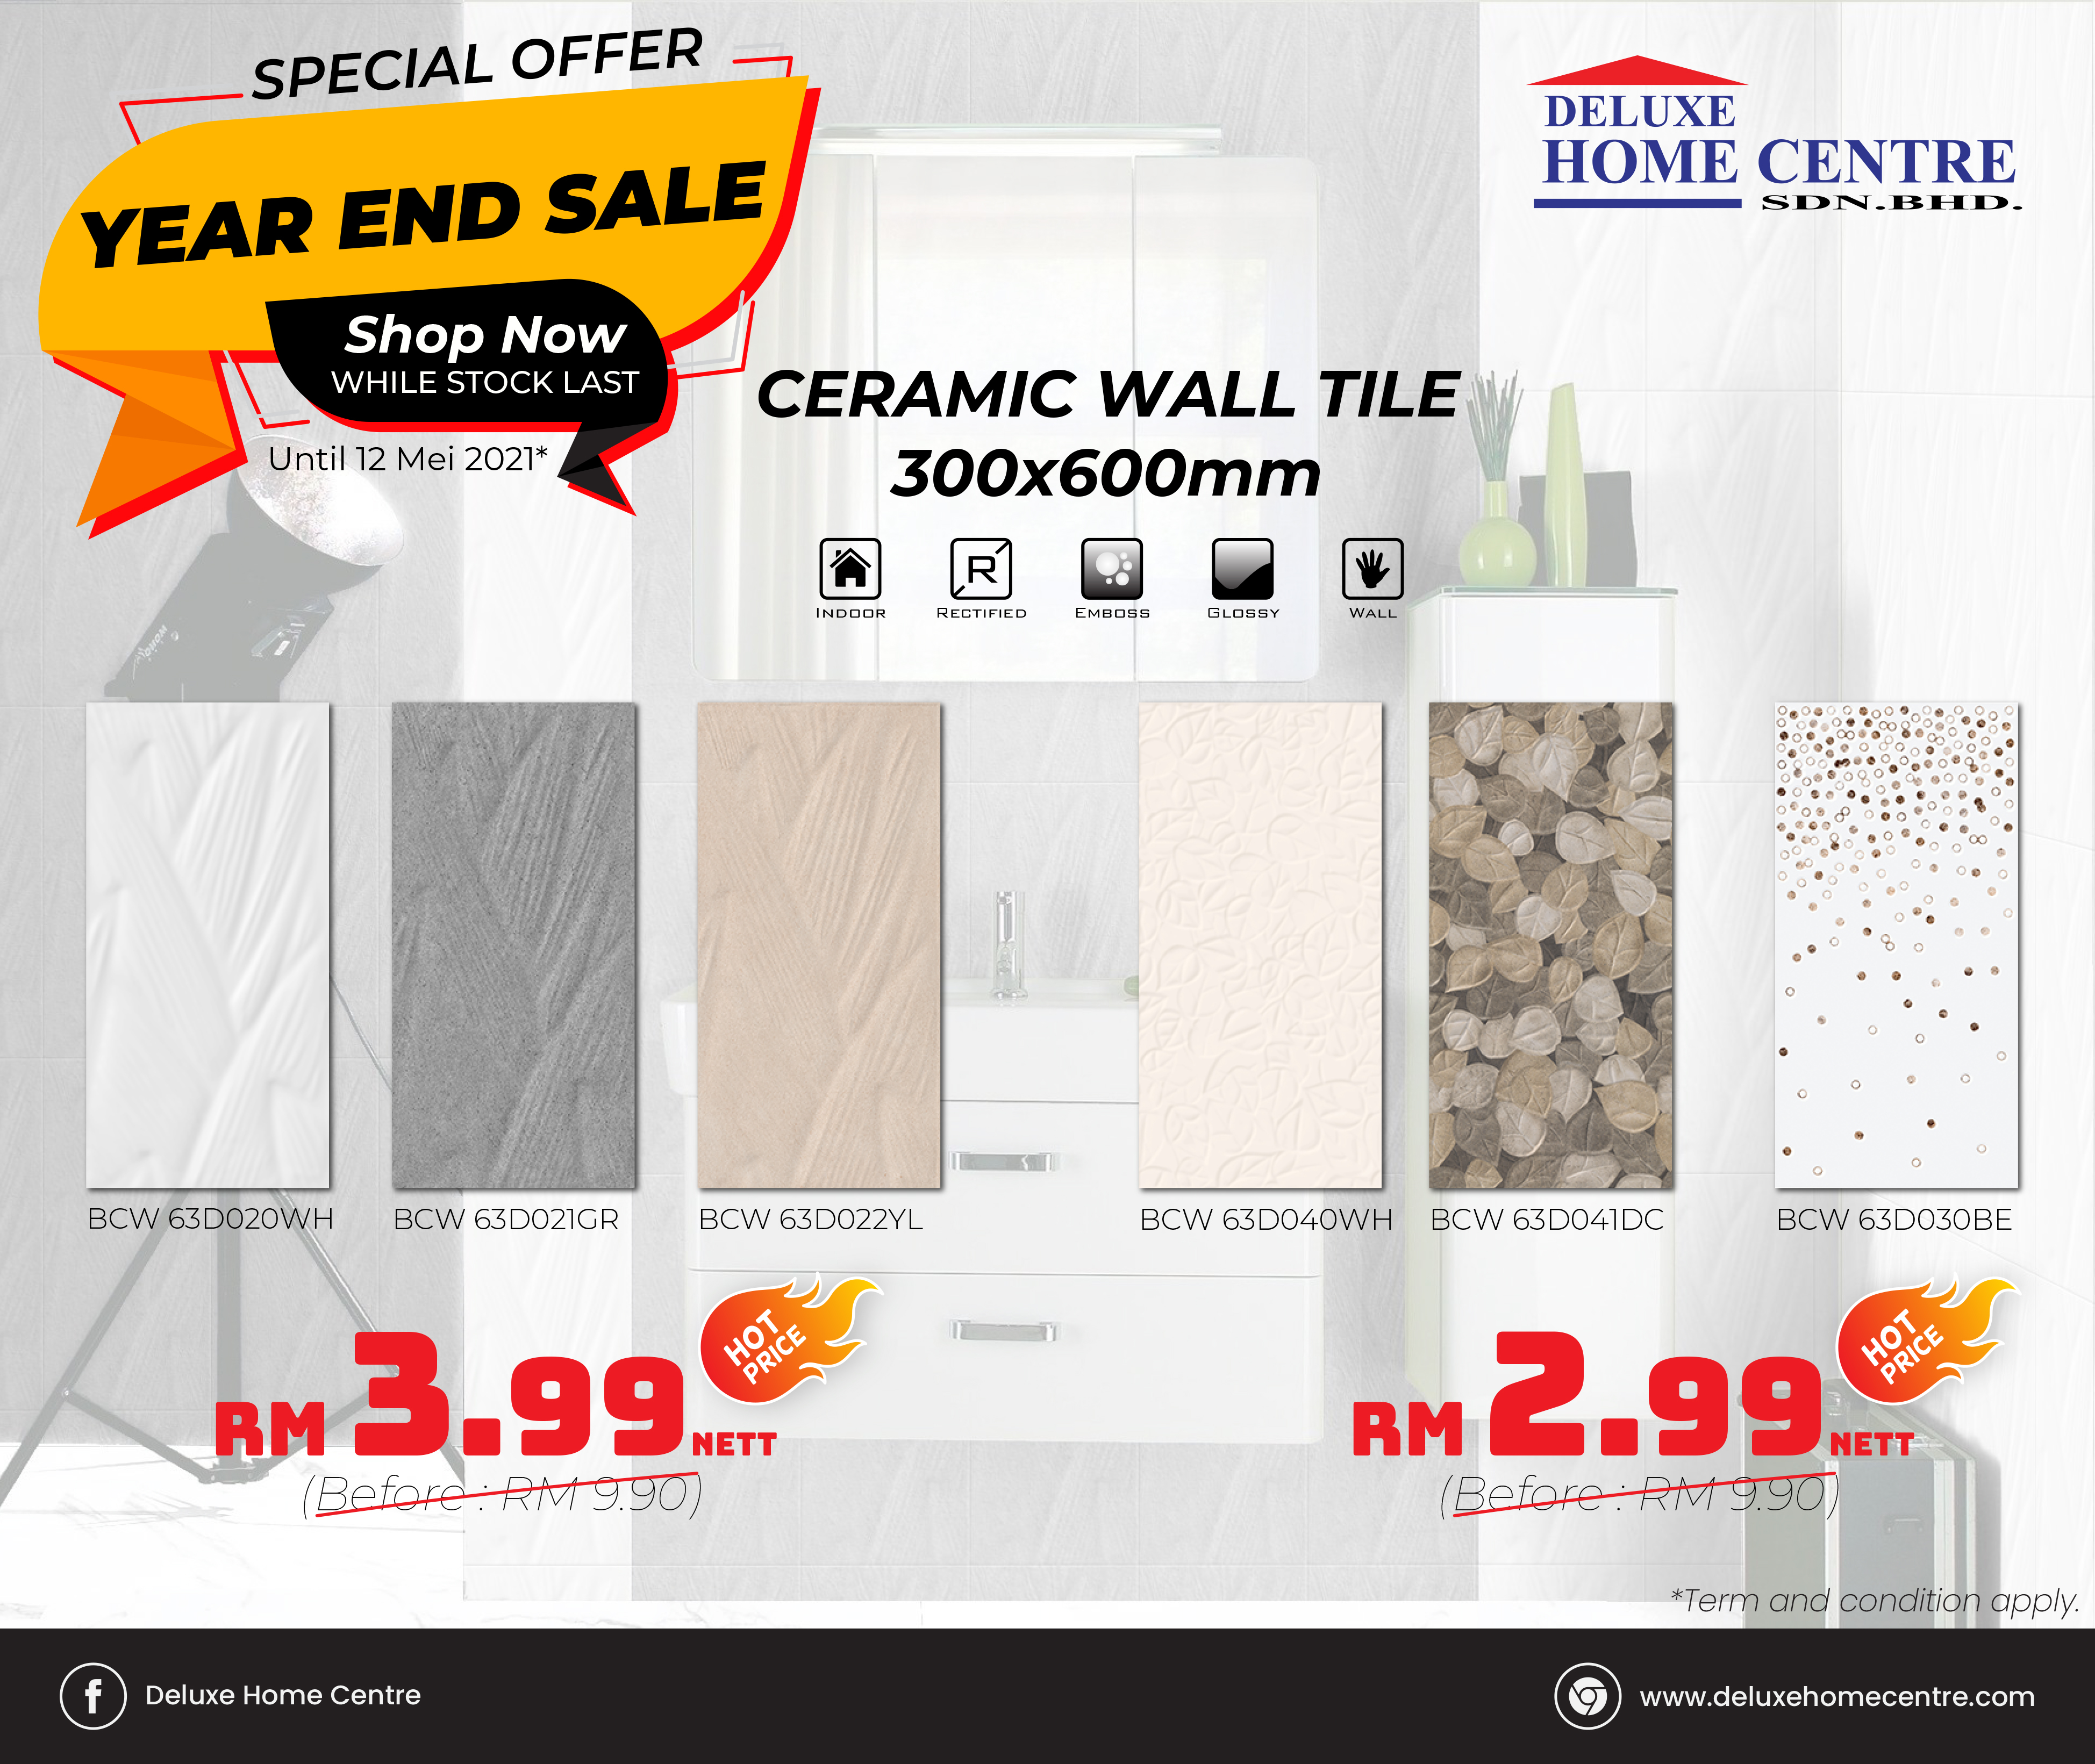 Deluxe Home Centre Sdn Bhd